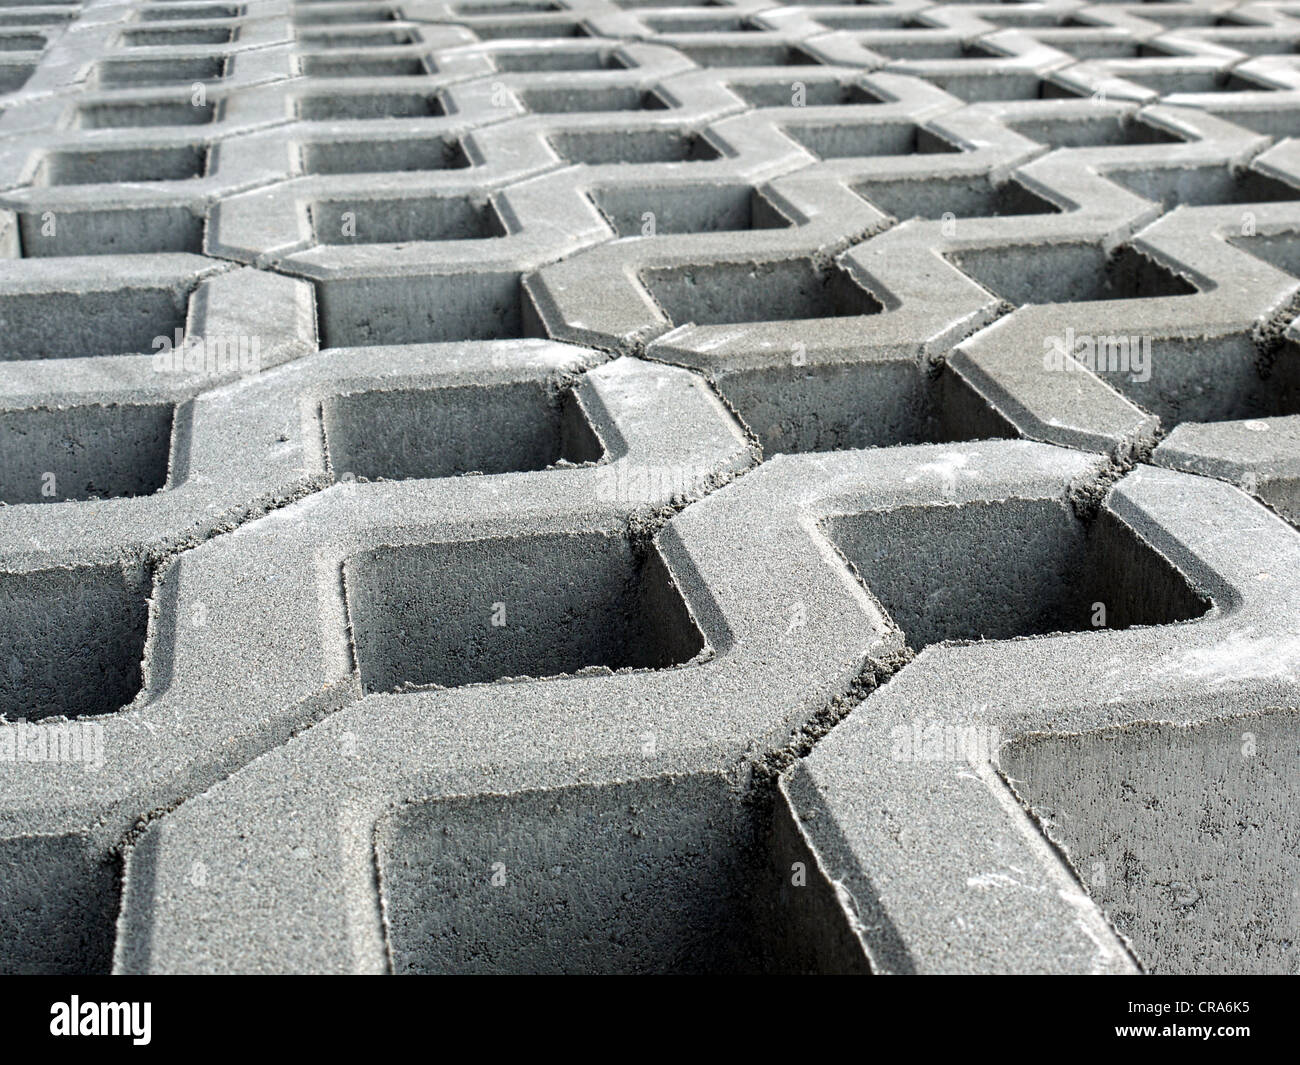 Closeup of openwork concrete pavement - Stock Image